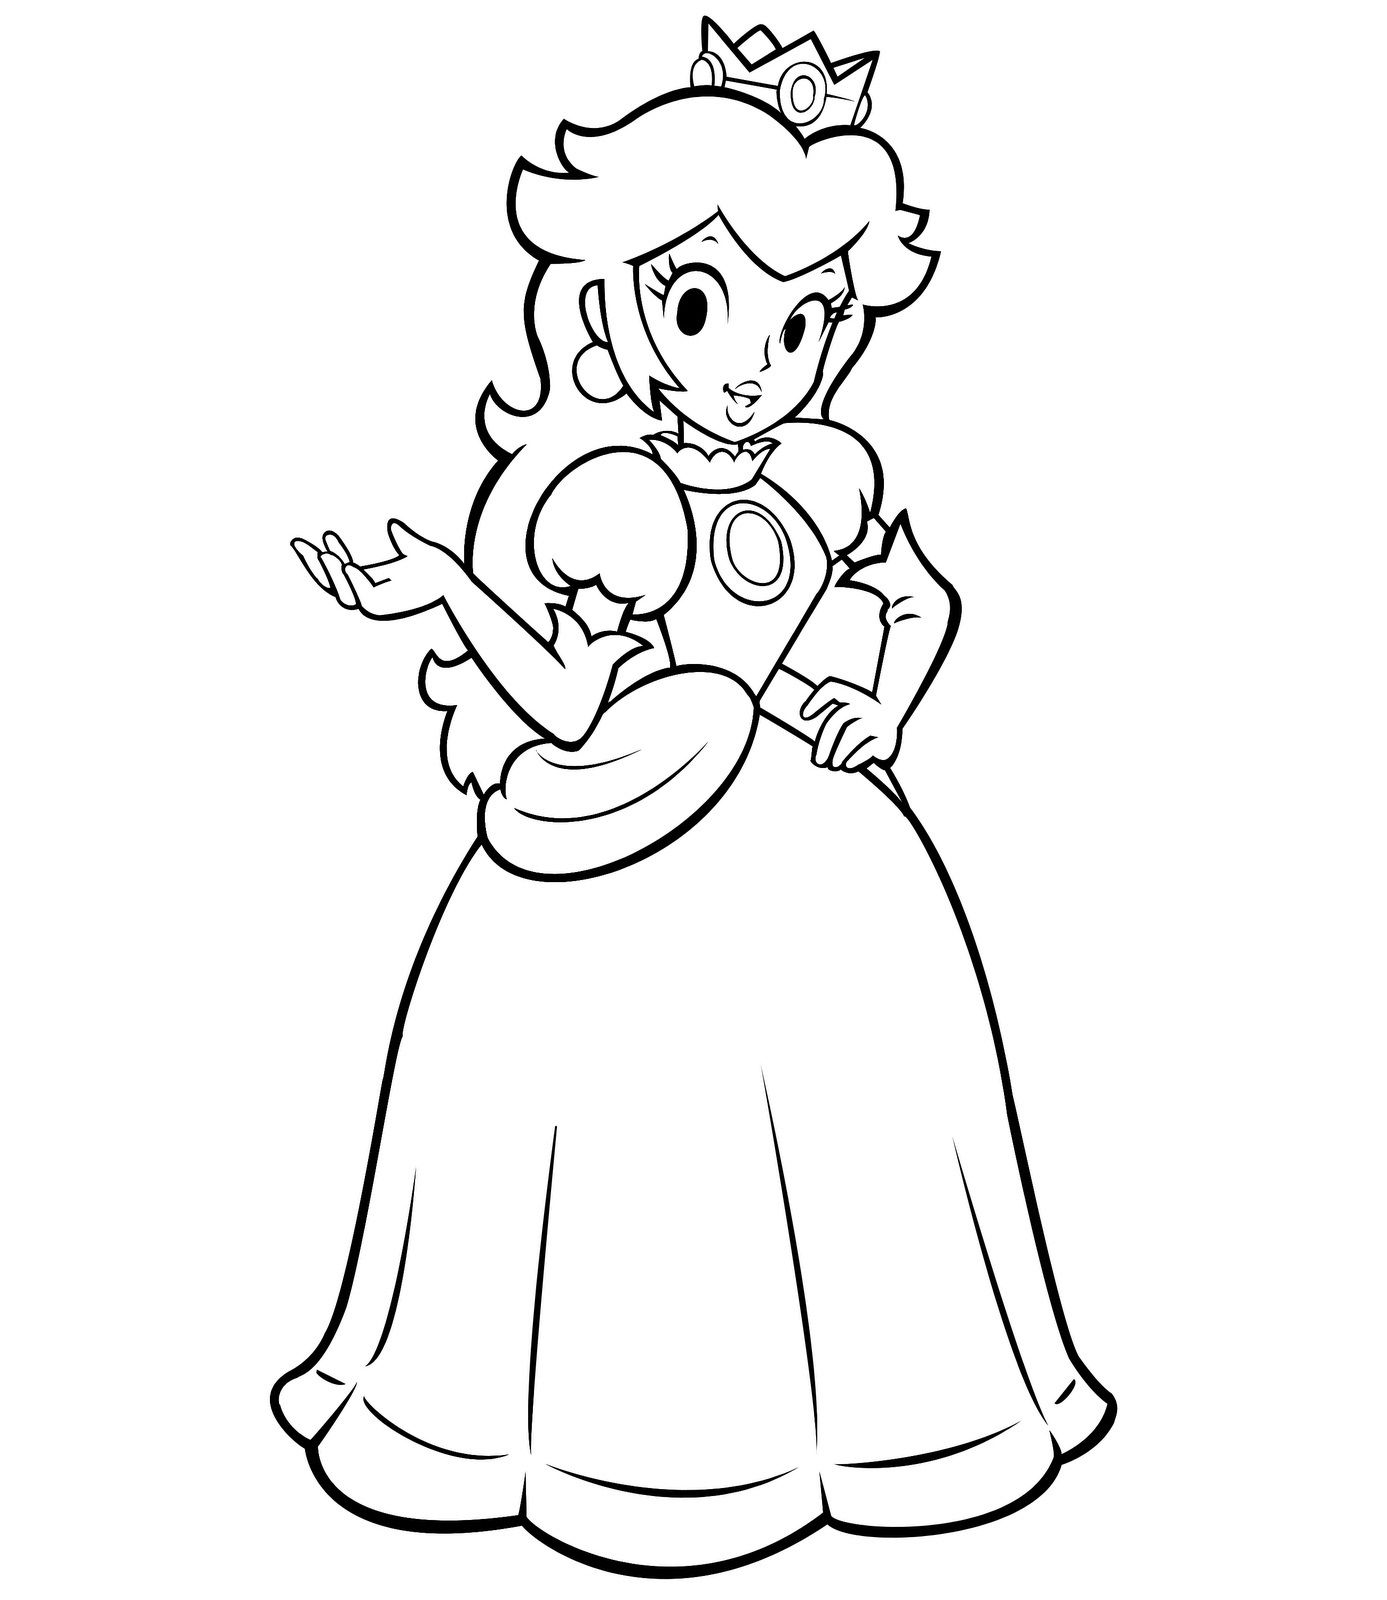 Princess Peach Coloring Pages | Coloring Pages | Pinterest ...